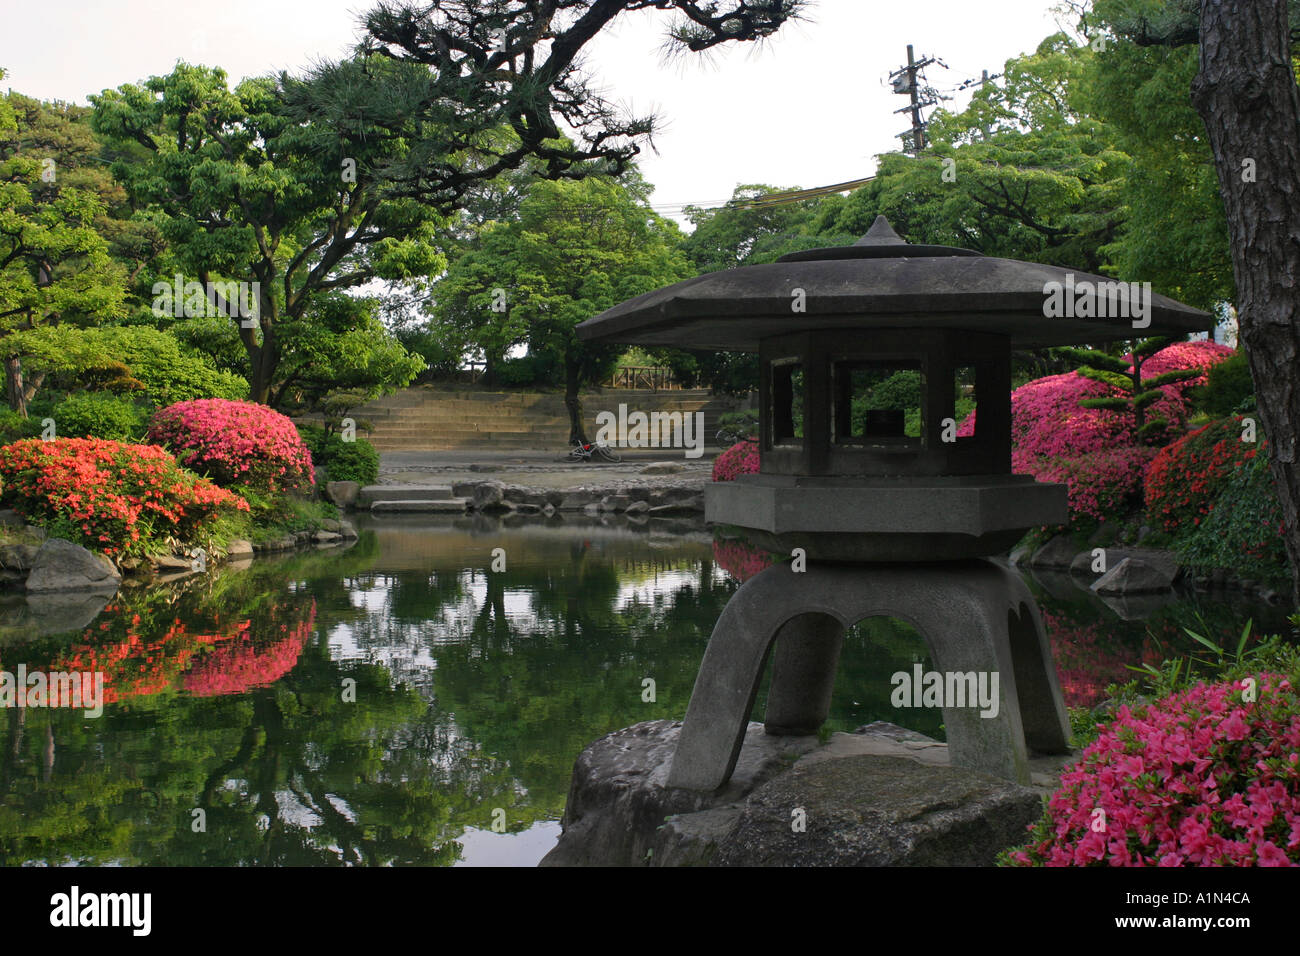 Beau Iconic Oriental Stone Lantern In A Traditional Scenic Japanese Garden With  Colourful Pink Flowers Osaka Castle Japan Asia